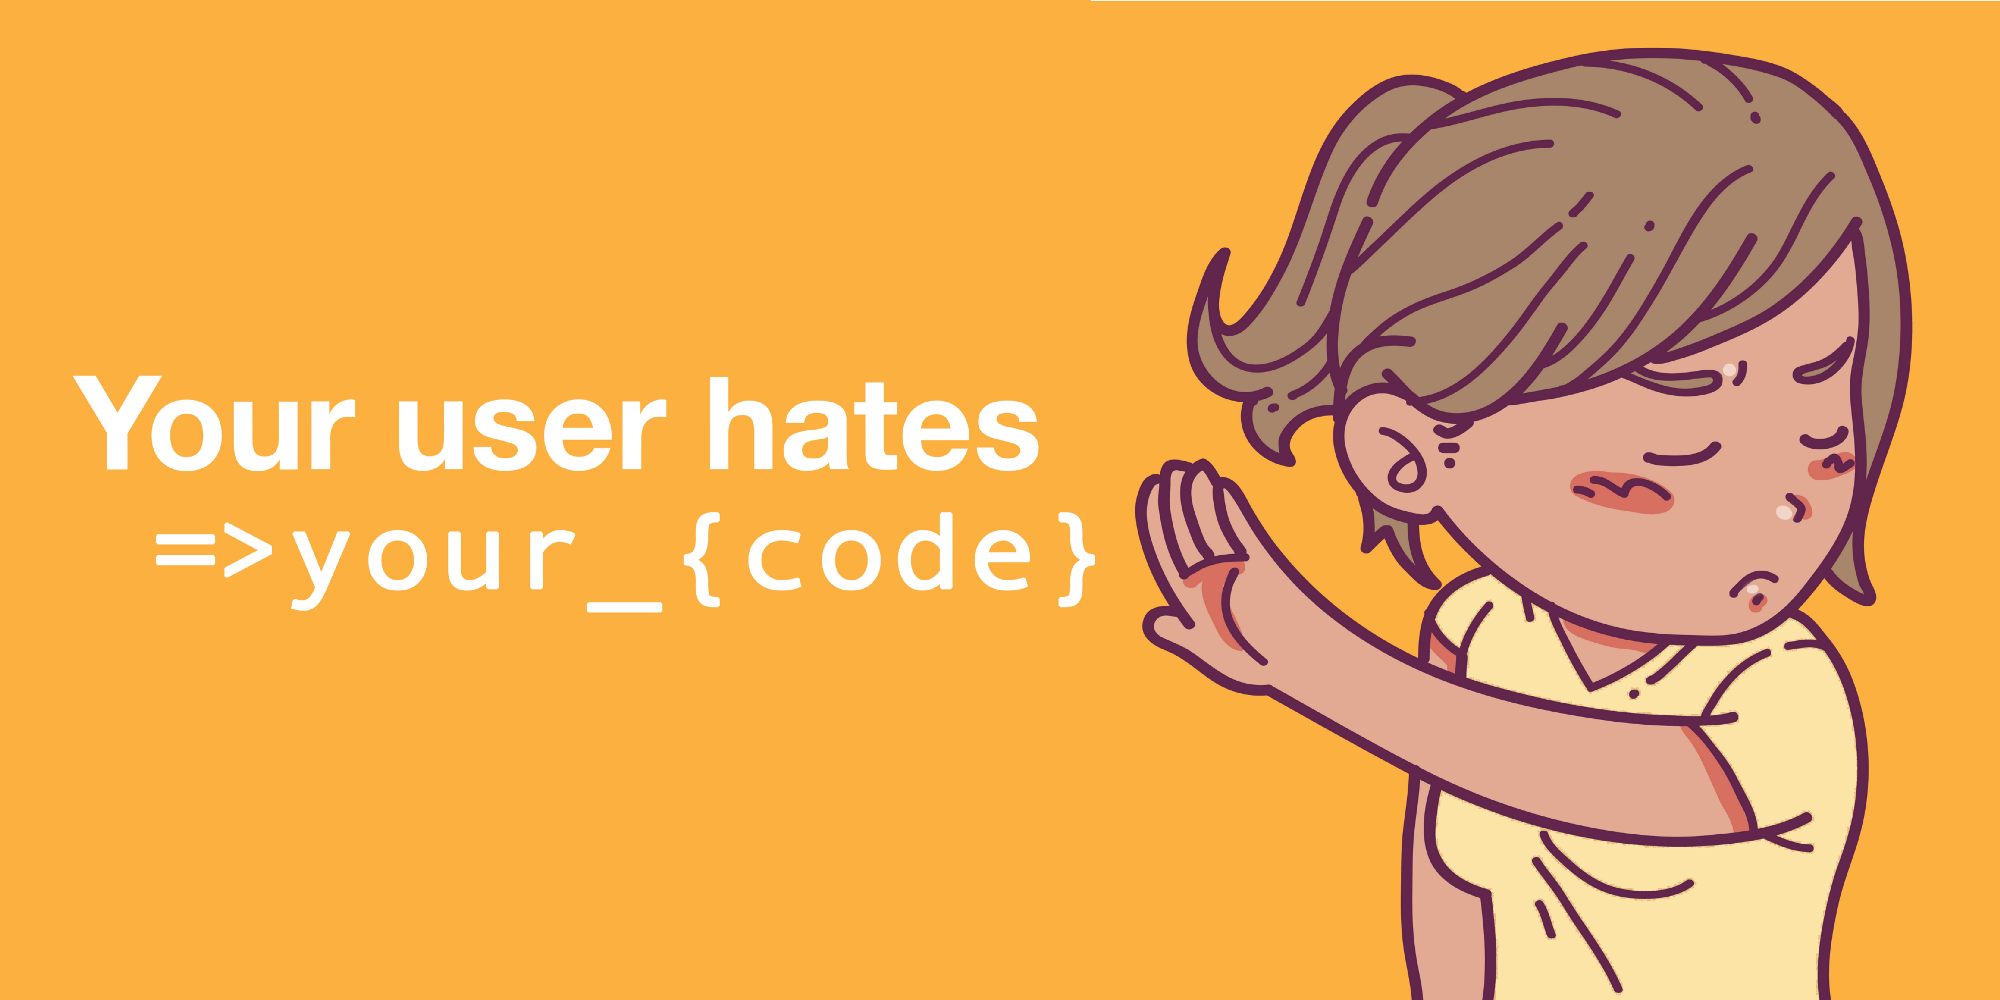 Your user hates your code